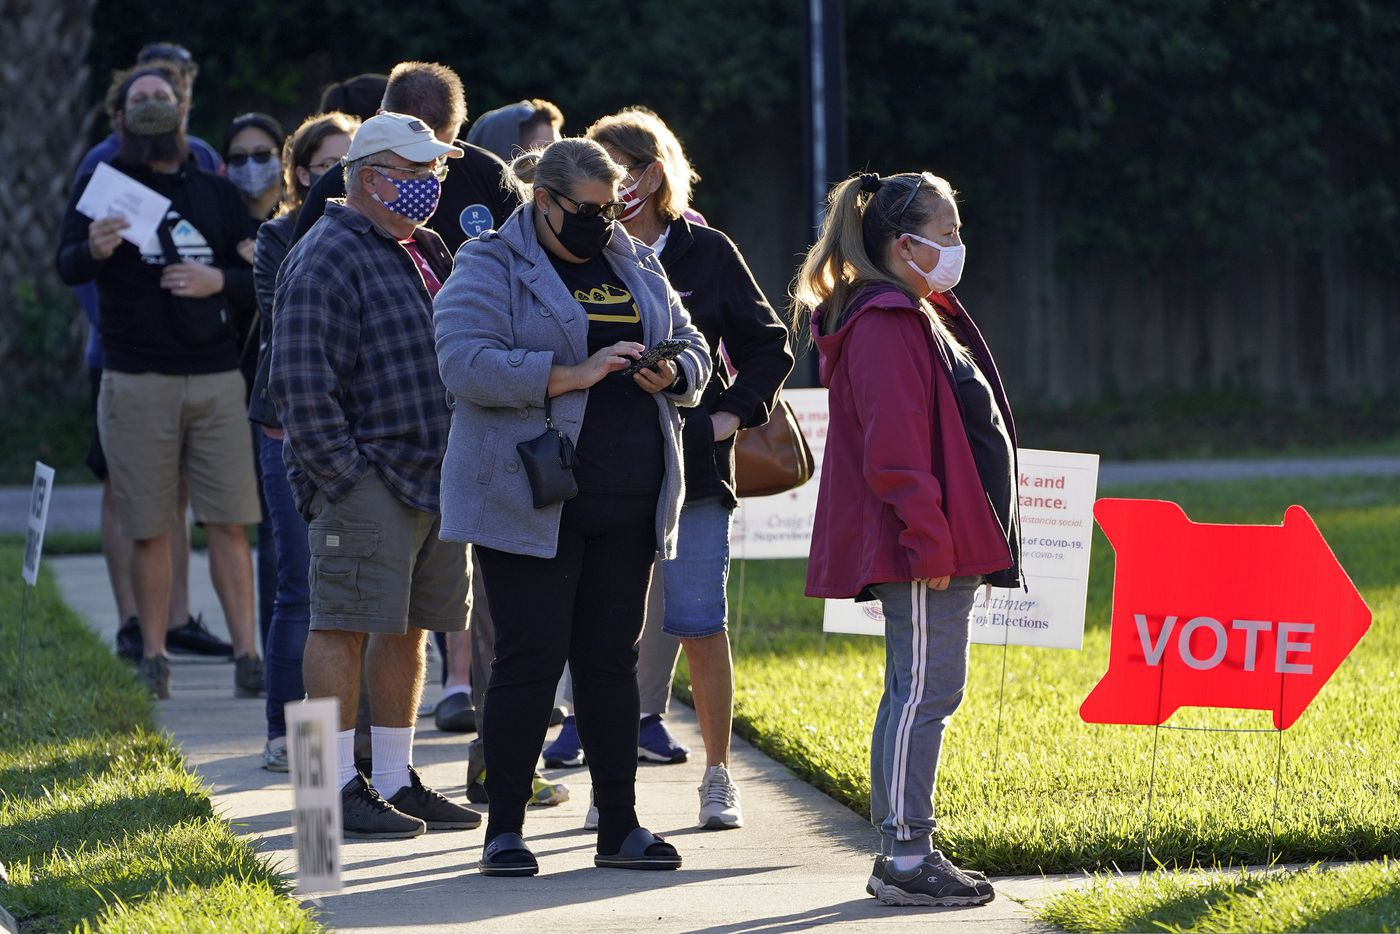 People wear protective face masks as they wait in line to vote at the Bell Shoals Baptist Church on election day Tuesday, Nov. 3, 2020, in Brandon, Fla. (AP Photo/Chris O'Meara)